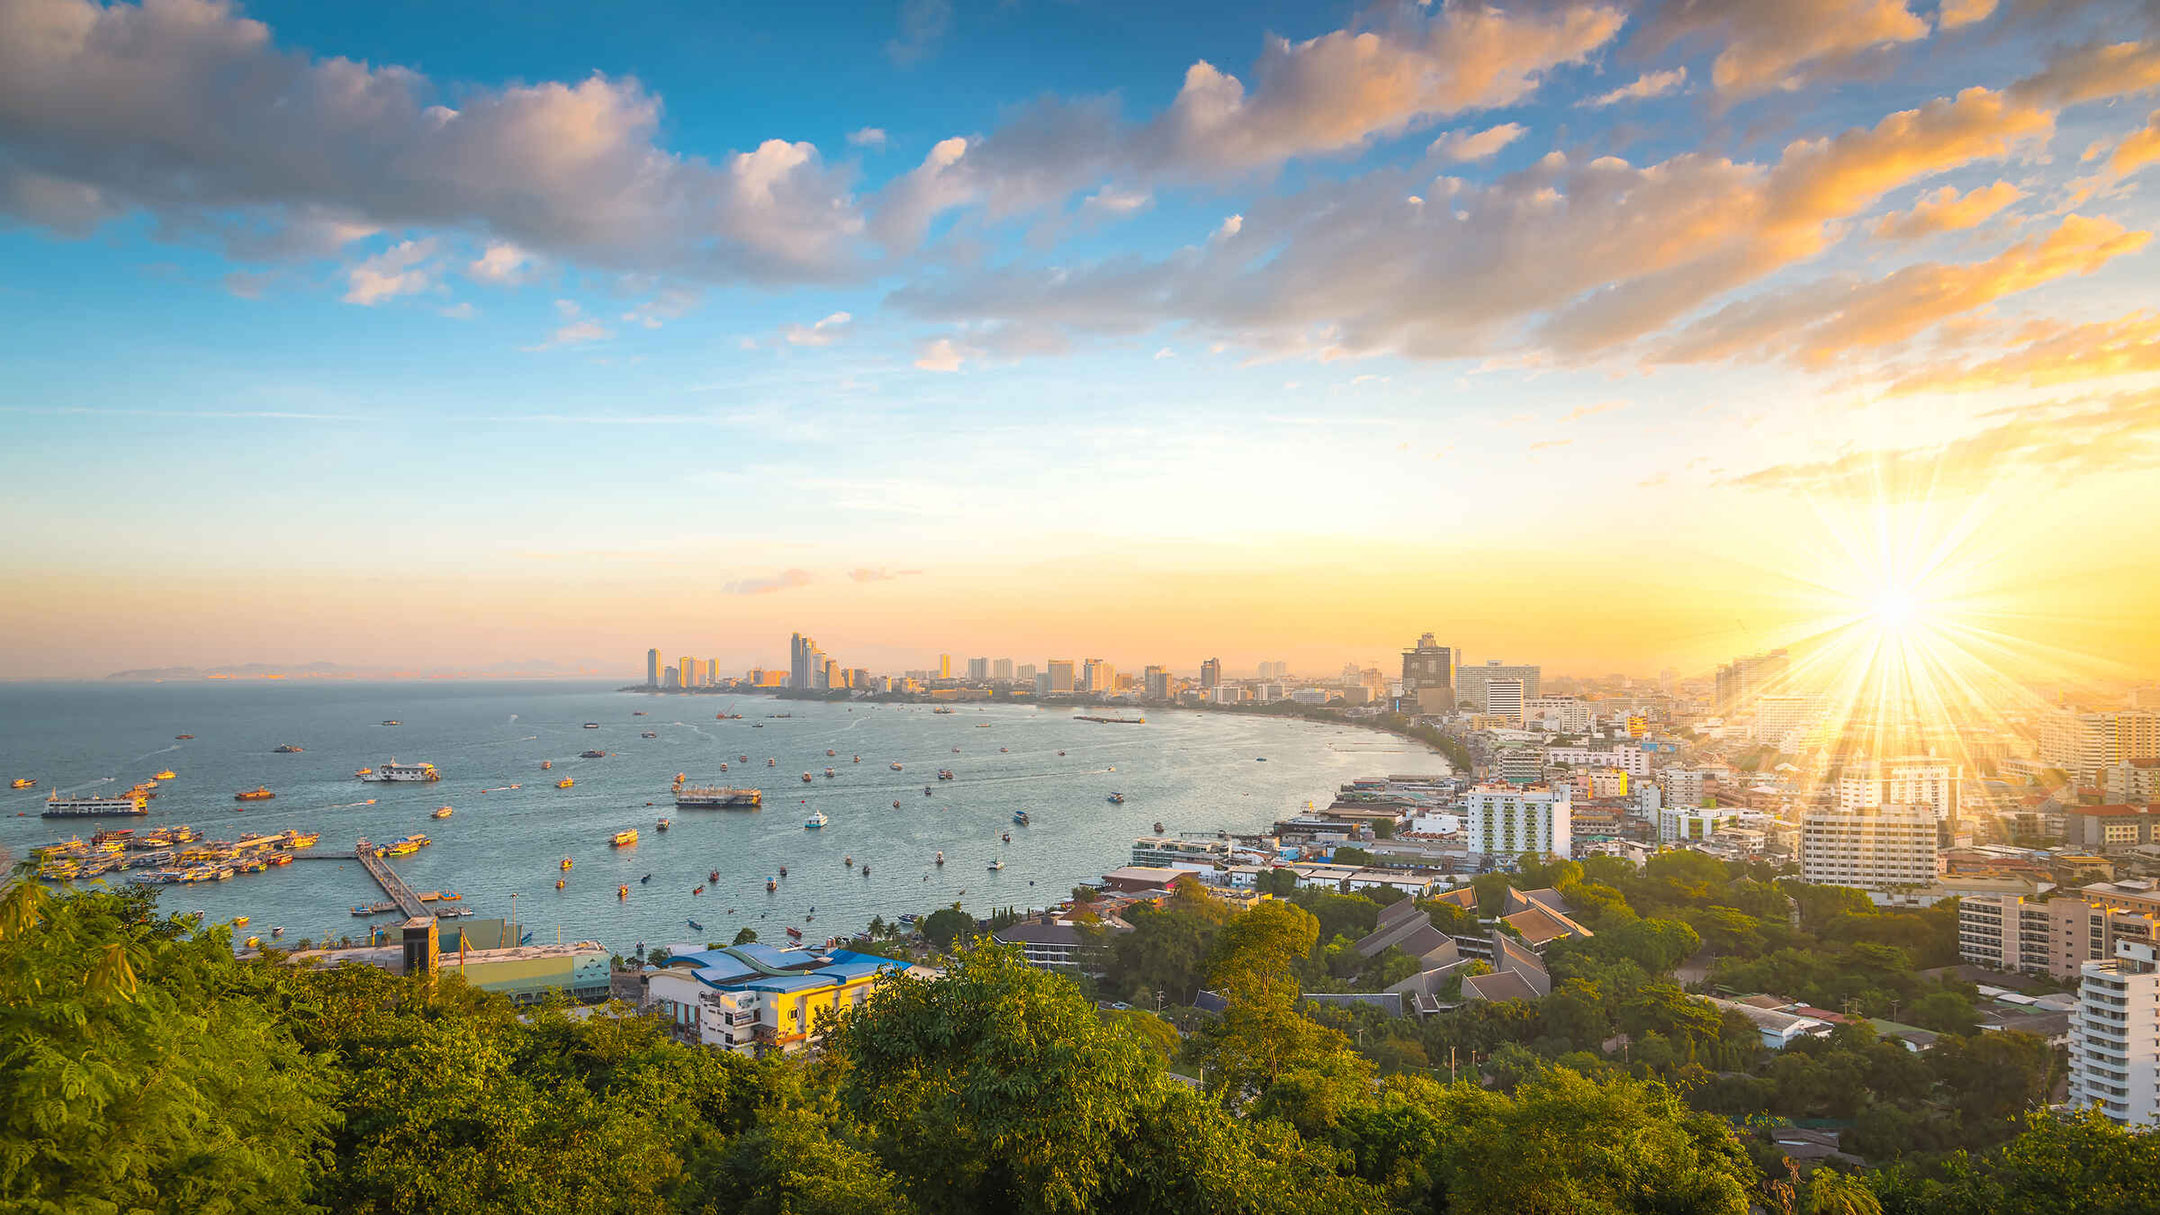 Warning from Pattaya hotel industry boss of a Chinese takeover, loss of income to the economy